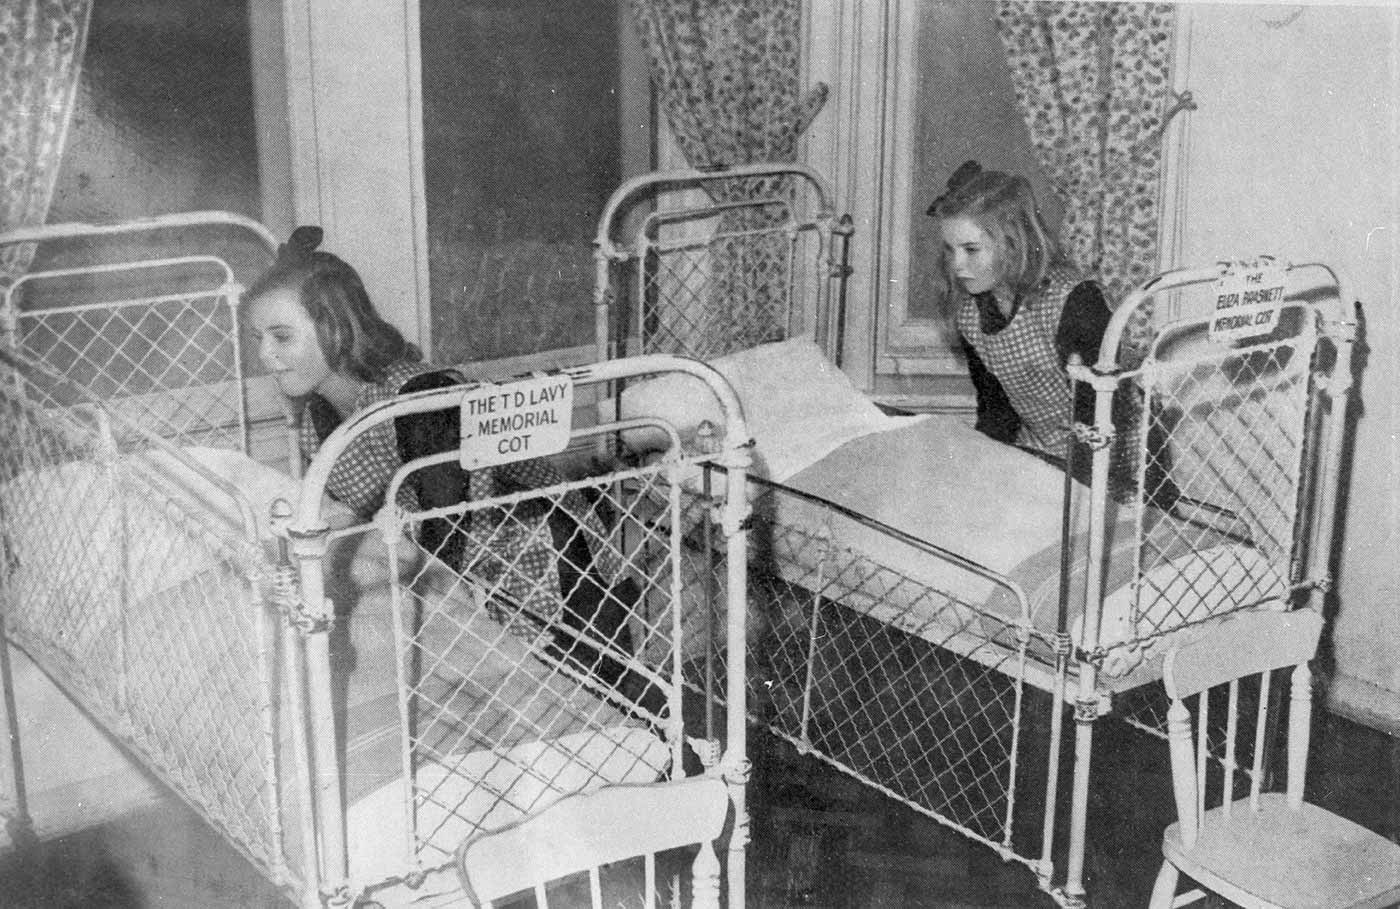 Black and white image showing two young girls tucking in bedding on metal and wire baby cots. The girls wear checked smocks over dark tops and have ribbons in their hair. The cot on the left has a metal plaque at the end which reads 'THE TD LAVY MEMORIAL COT'. - click to view larger image